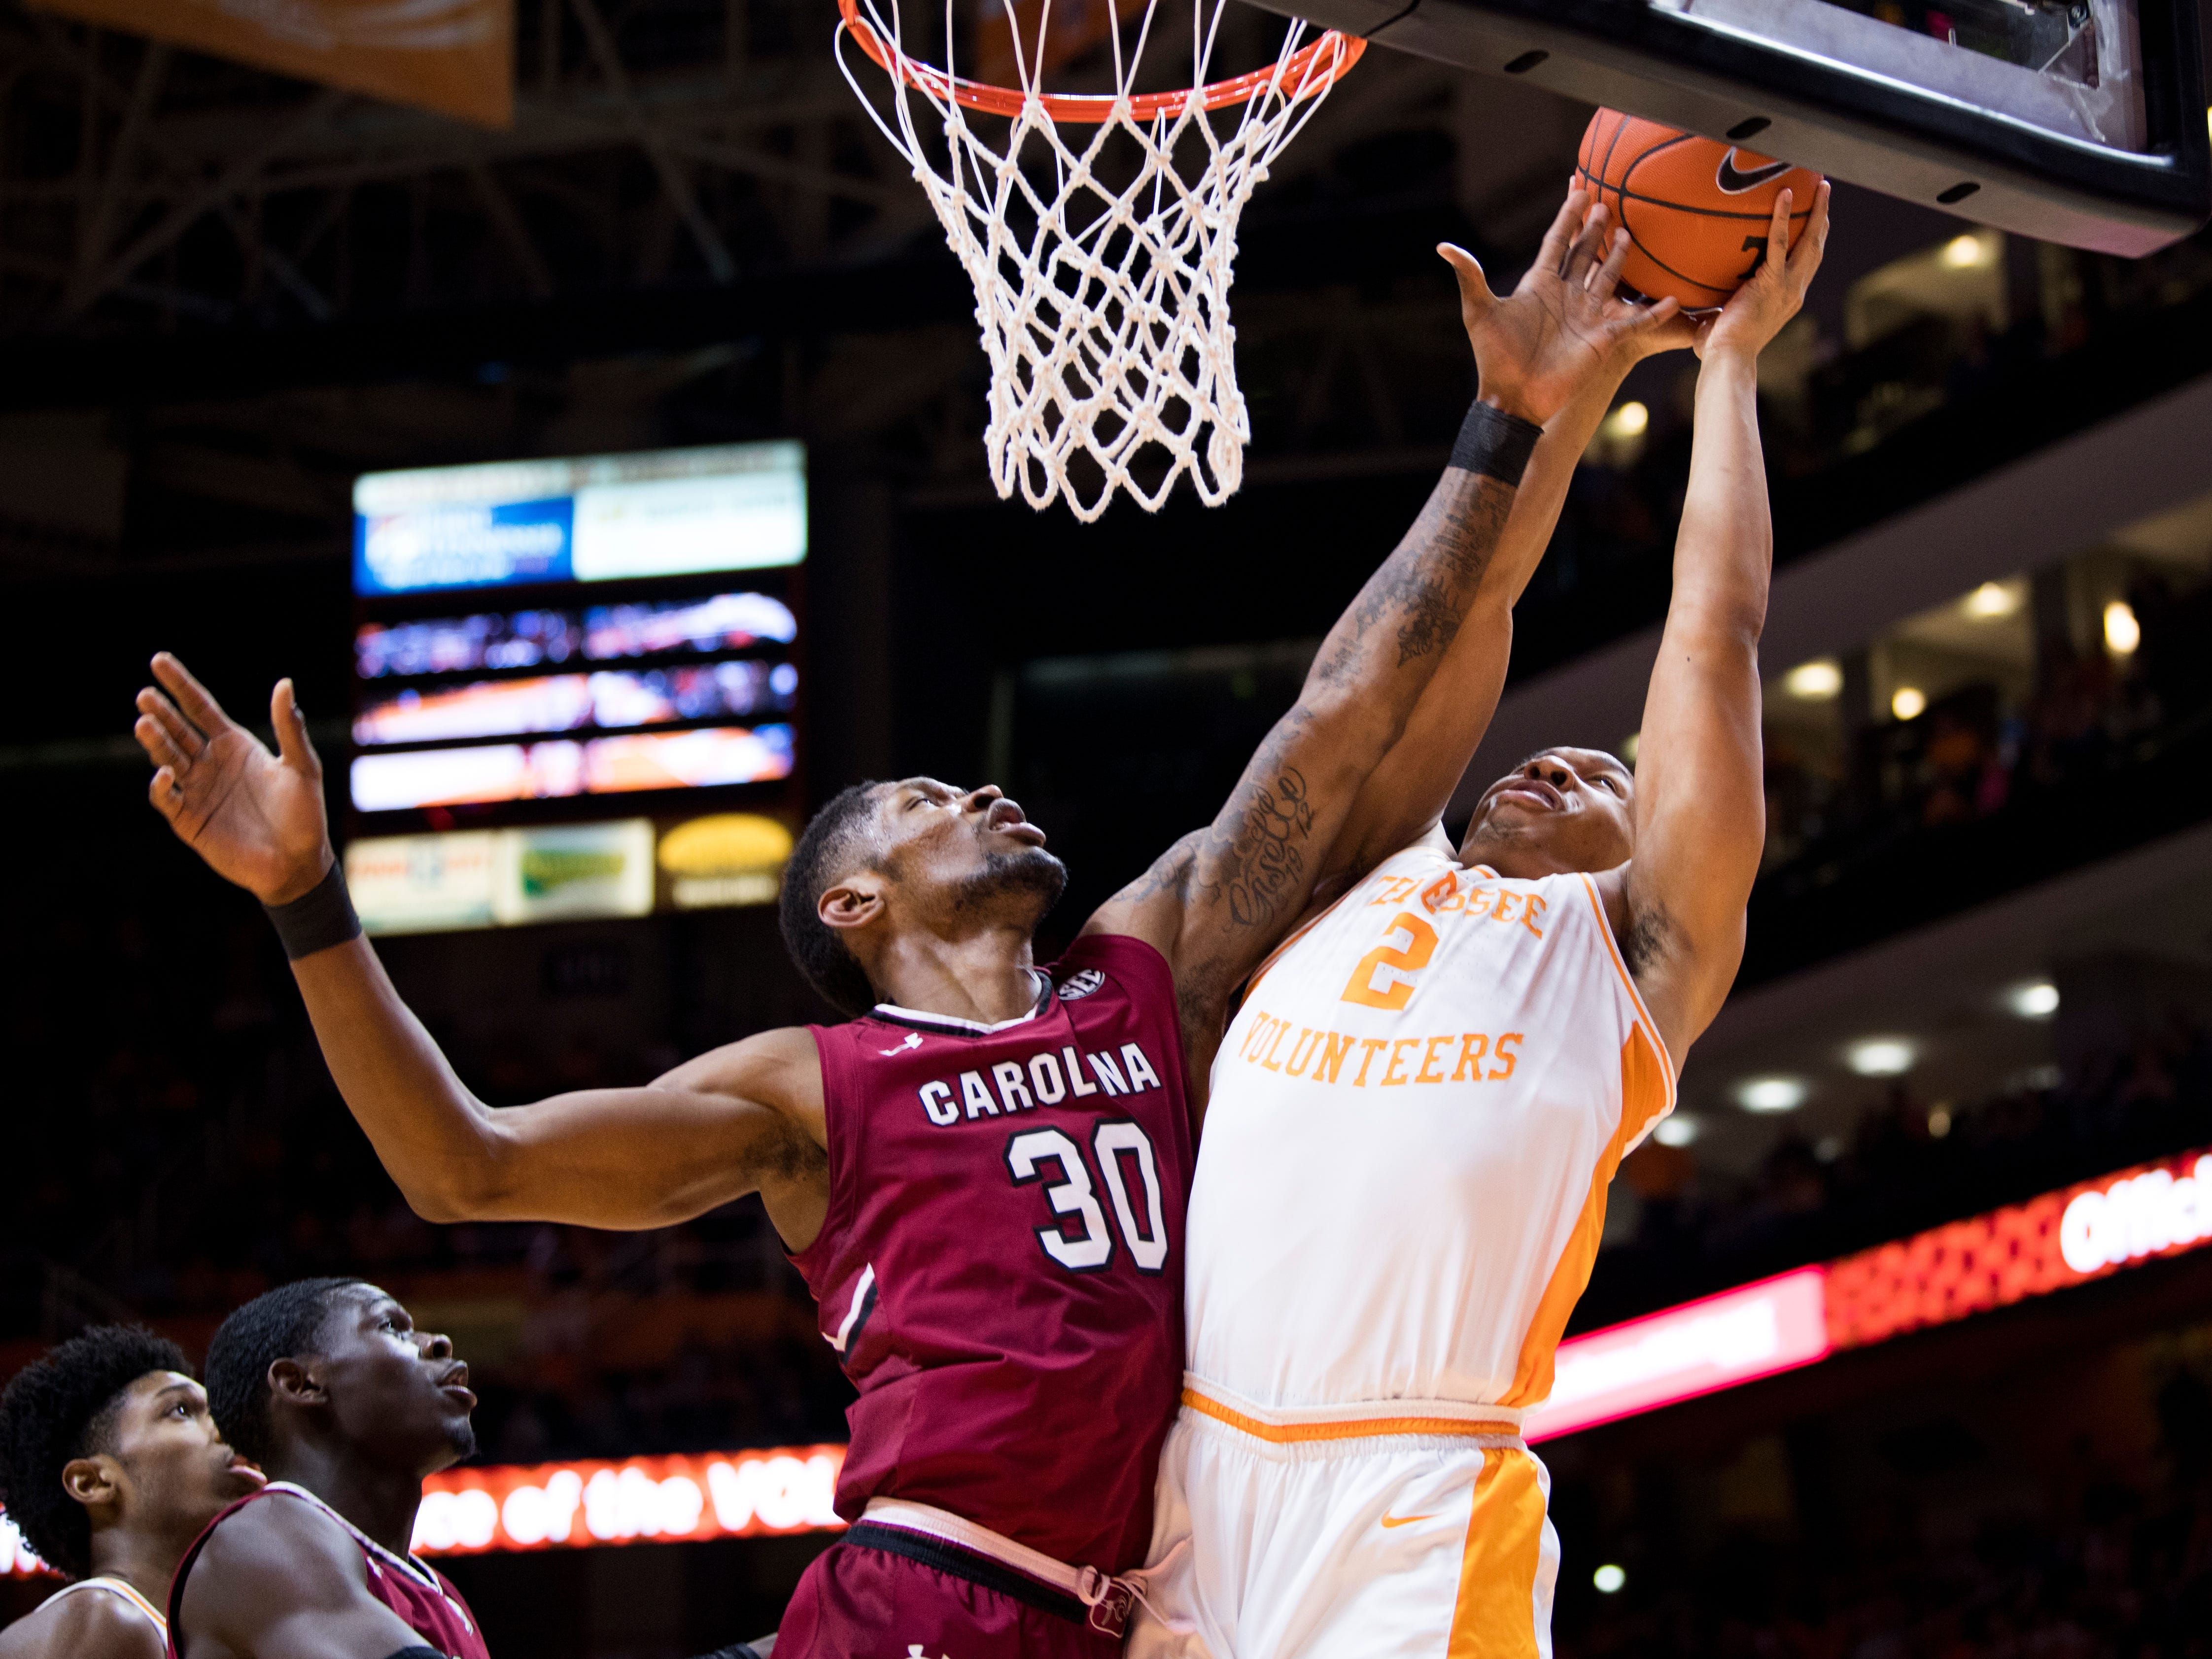 Tennessee forward Grant Williams (2) attempts a shot past South Carolina forward Chris Silva (30) during Tennessee's home SEC game against South Carolina at Thompson-Boling Arena in Knoxville on Wednesday, February 13, 2019.